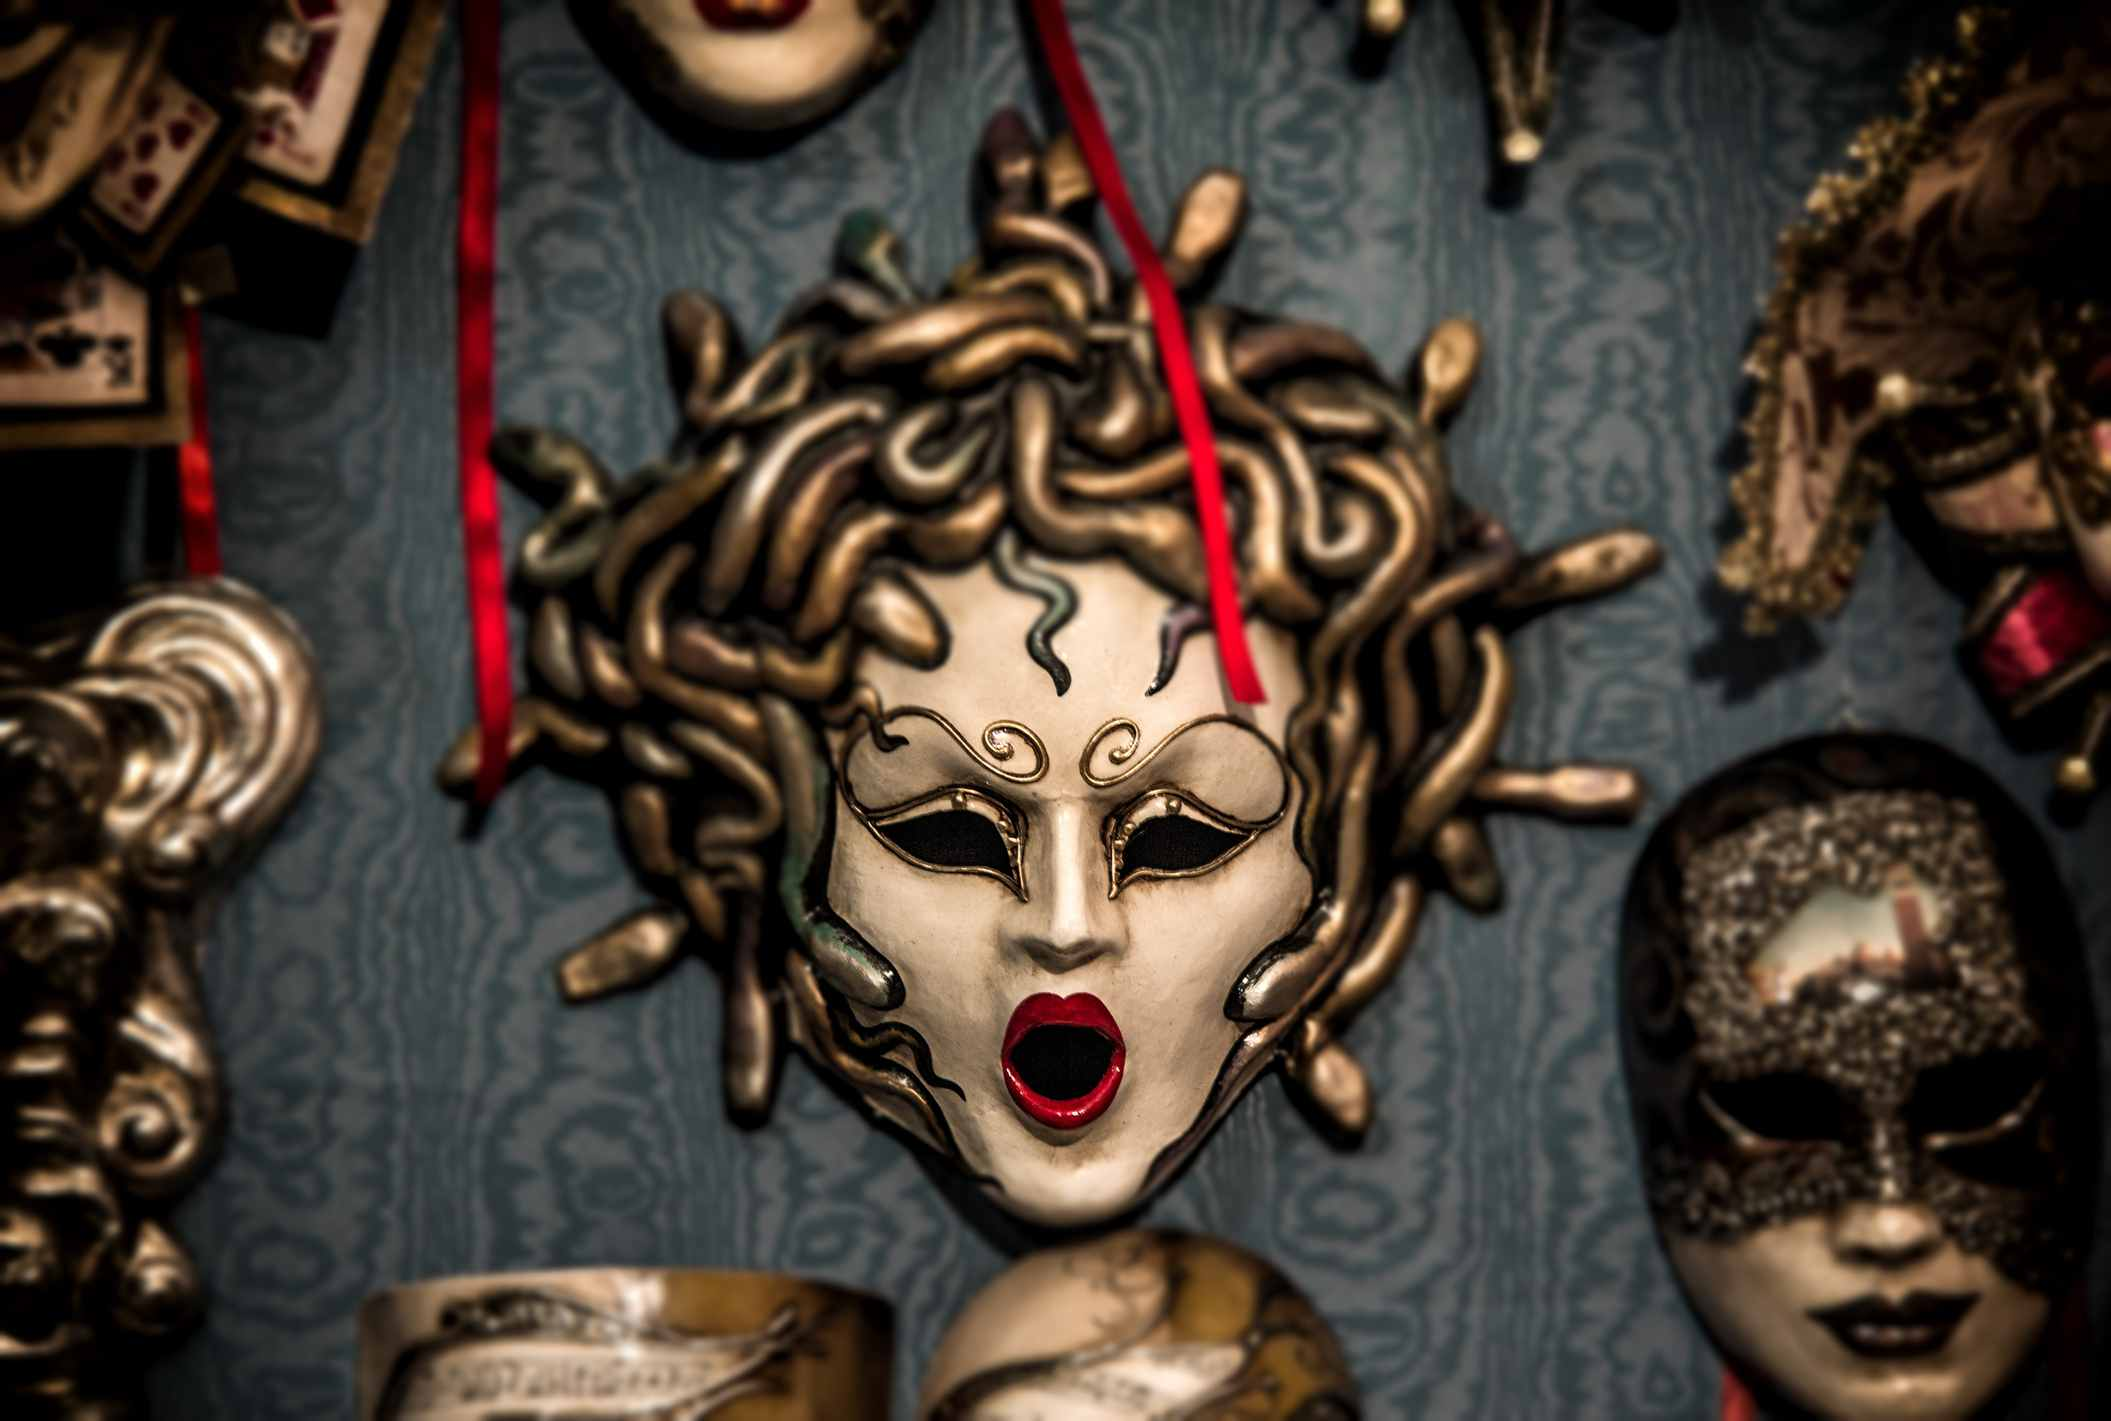 Medusa, Hydra, and Other Monsters from Greek Mythology